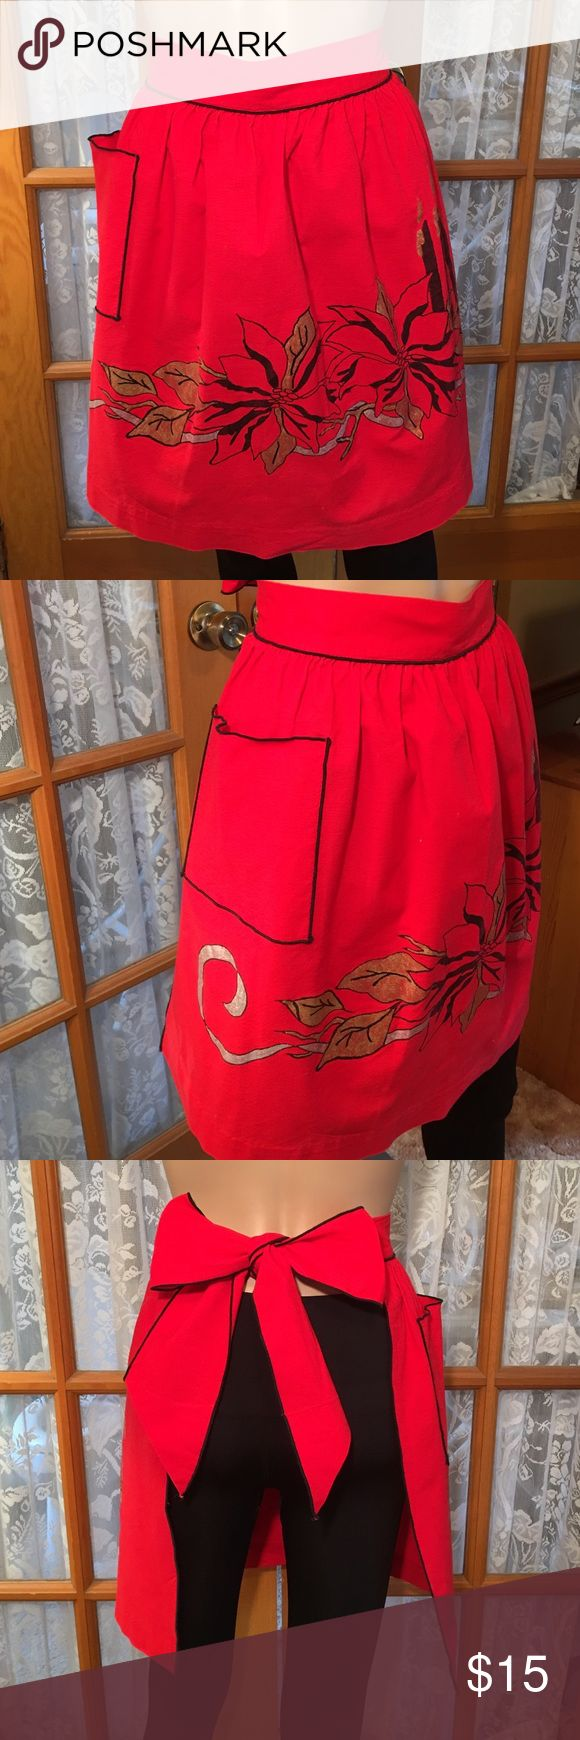 """💐Just In💐Vintage Handpainted Hand Sewn Apron I don't remember a time that I didn't have this apron. I have been married 46 years..... It is Hand painted. The hem is seen by hand. The trim looks perfect so I imagine a machine did that or if someone did it by hand, she was amazing. The front is 18"""" across. It is 19"""" long. The tie is 29"""" on each side. There is some slight damage that is an inch in length. Non smoking home Vintage Accessories"""